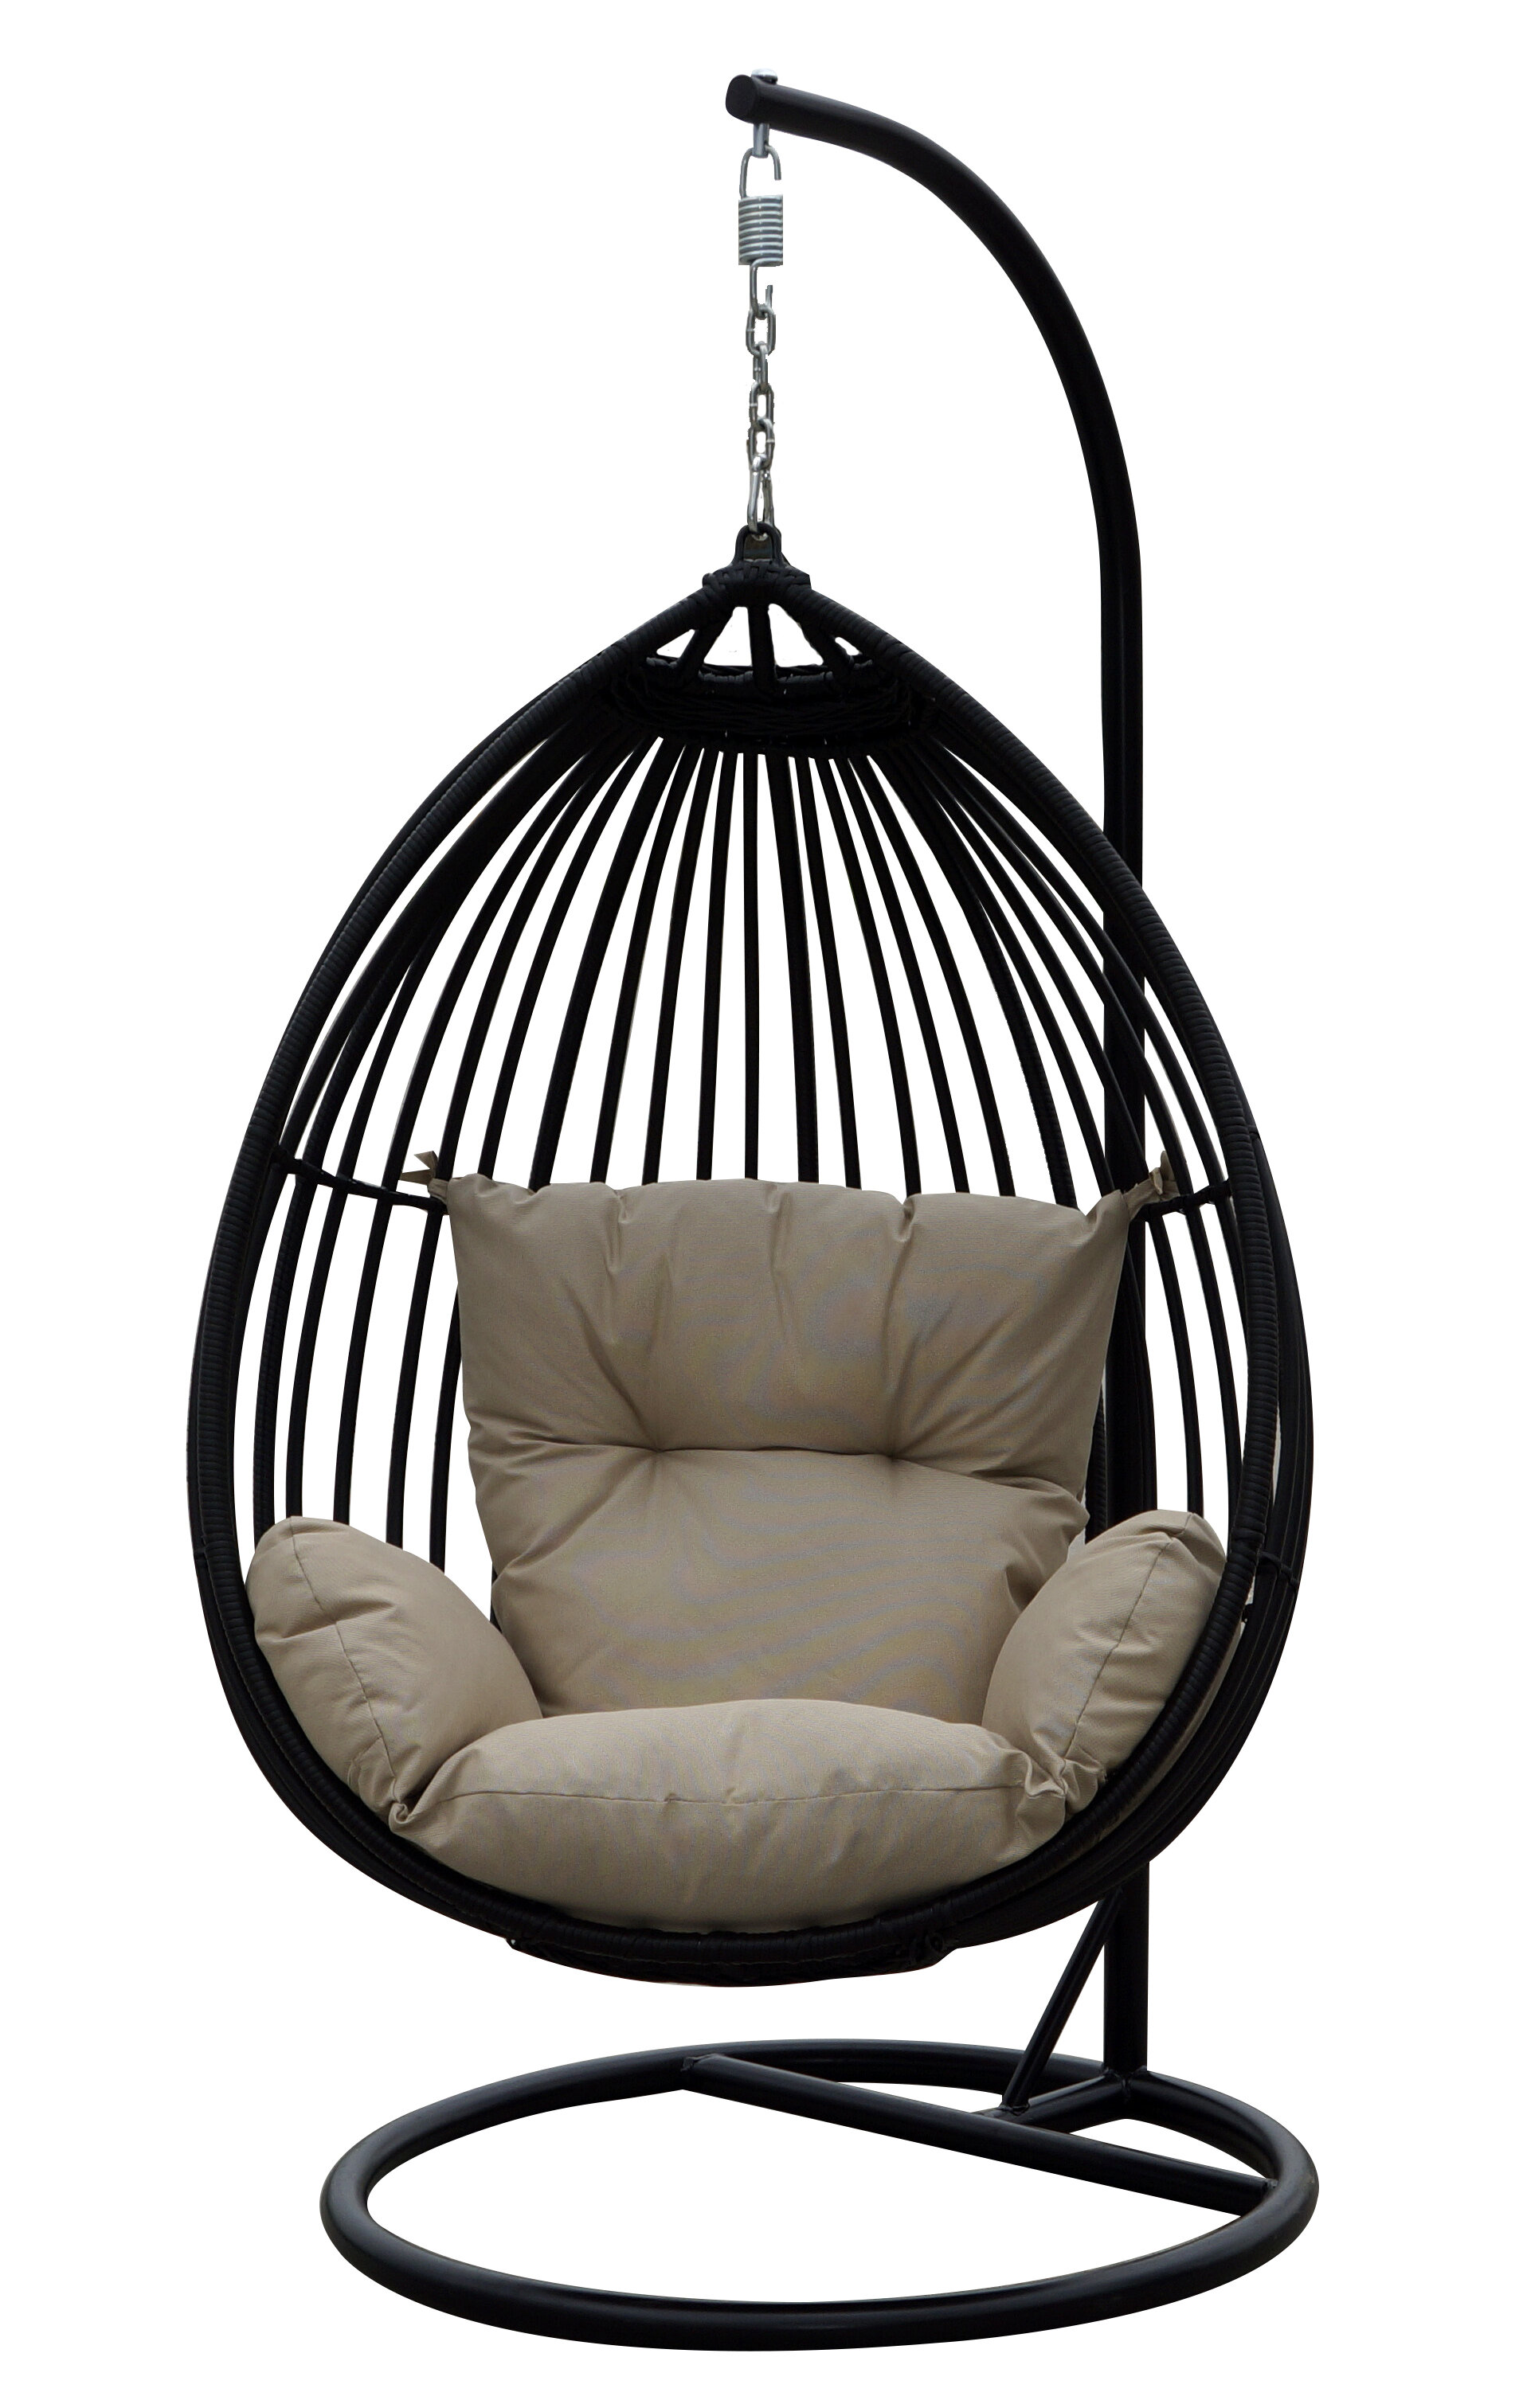 Audra Swing Chair With Stand Reviews Allmodern